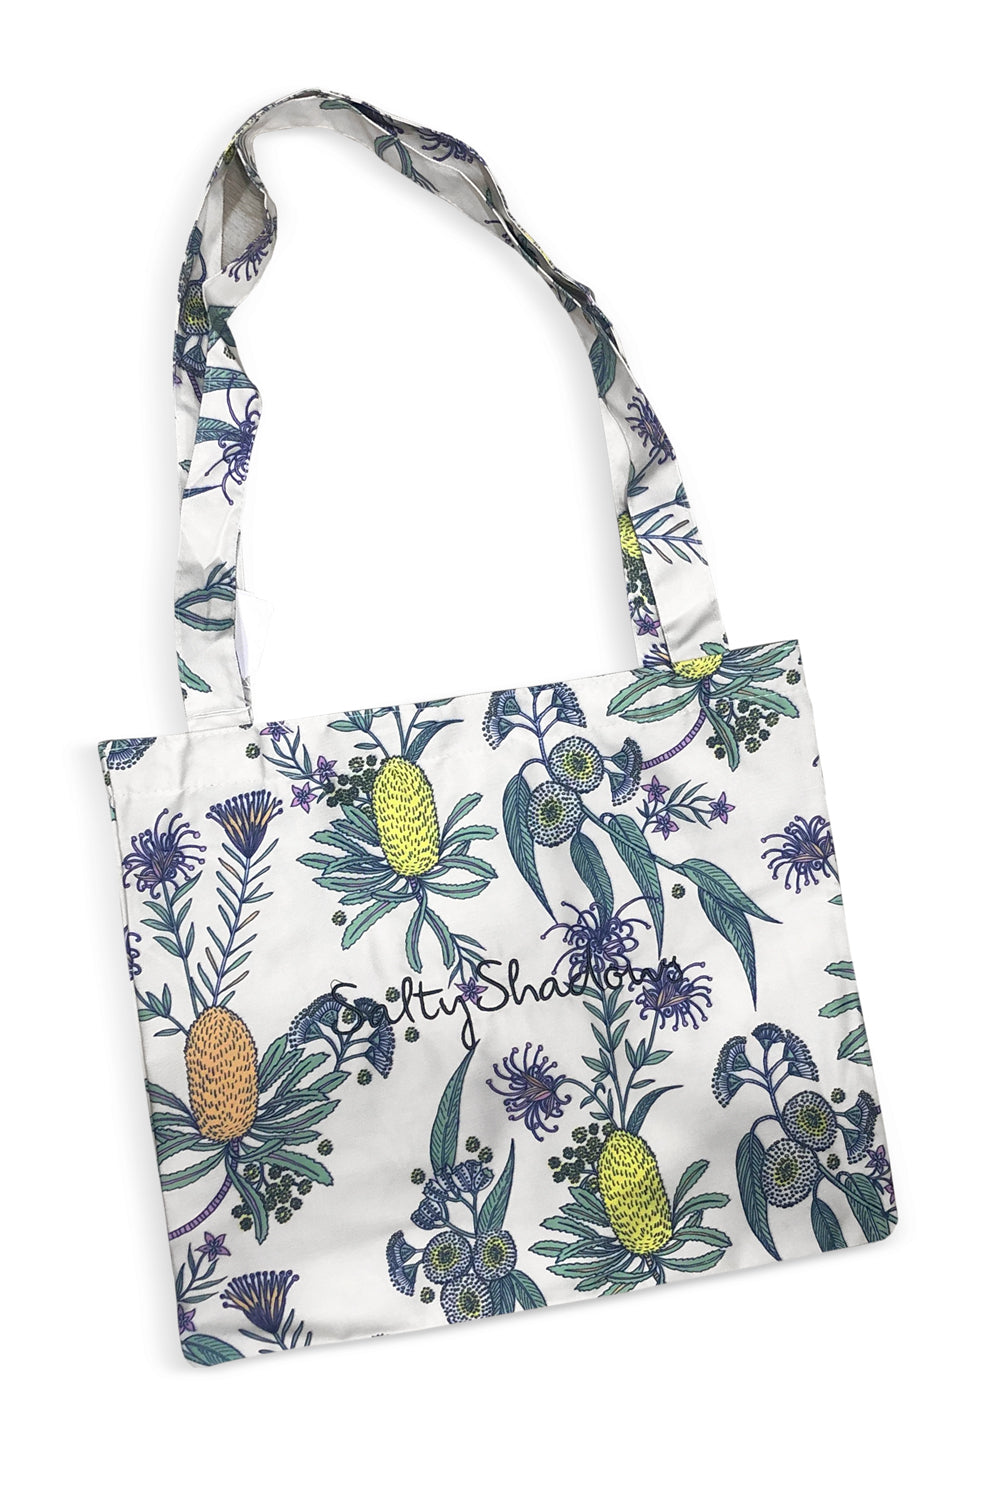 Salty Shadows Tote Bag